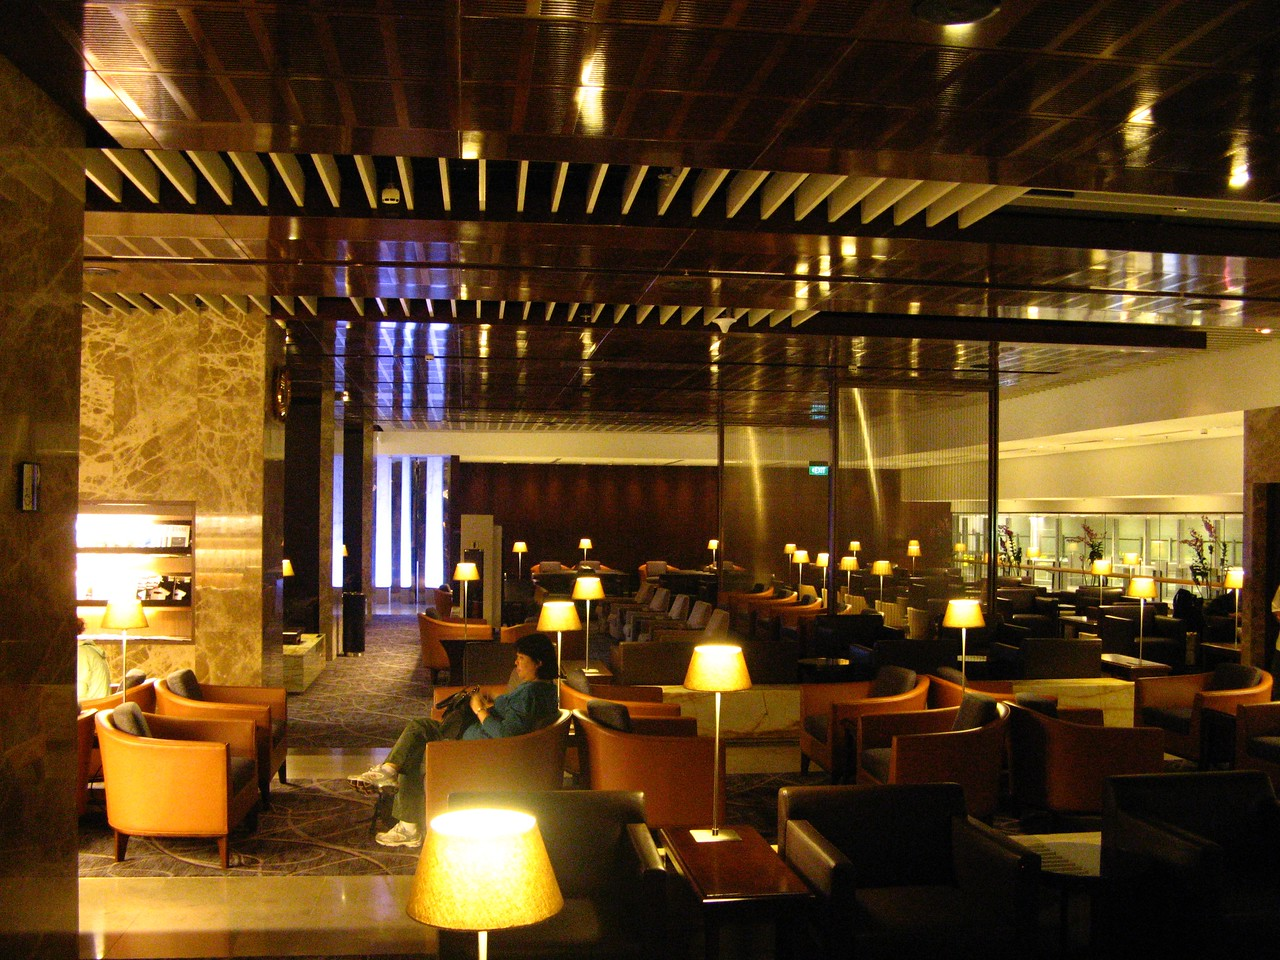 In Terminal 3, the Star Alliance Business and First Class lounges are well equipped and offer buffet breakfasts and meals throughout the day.